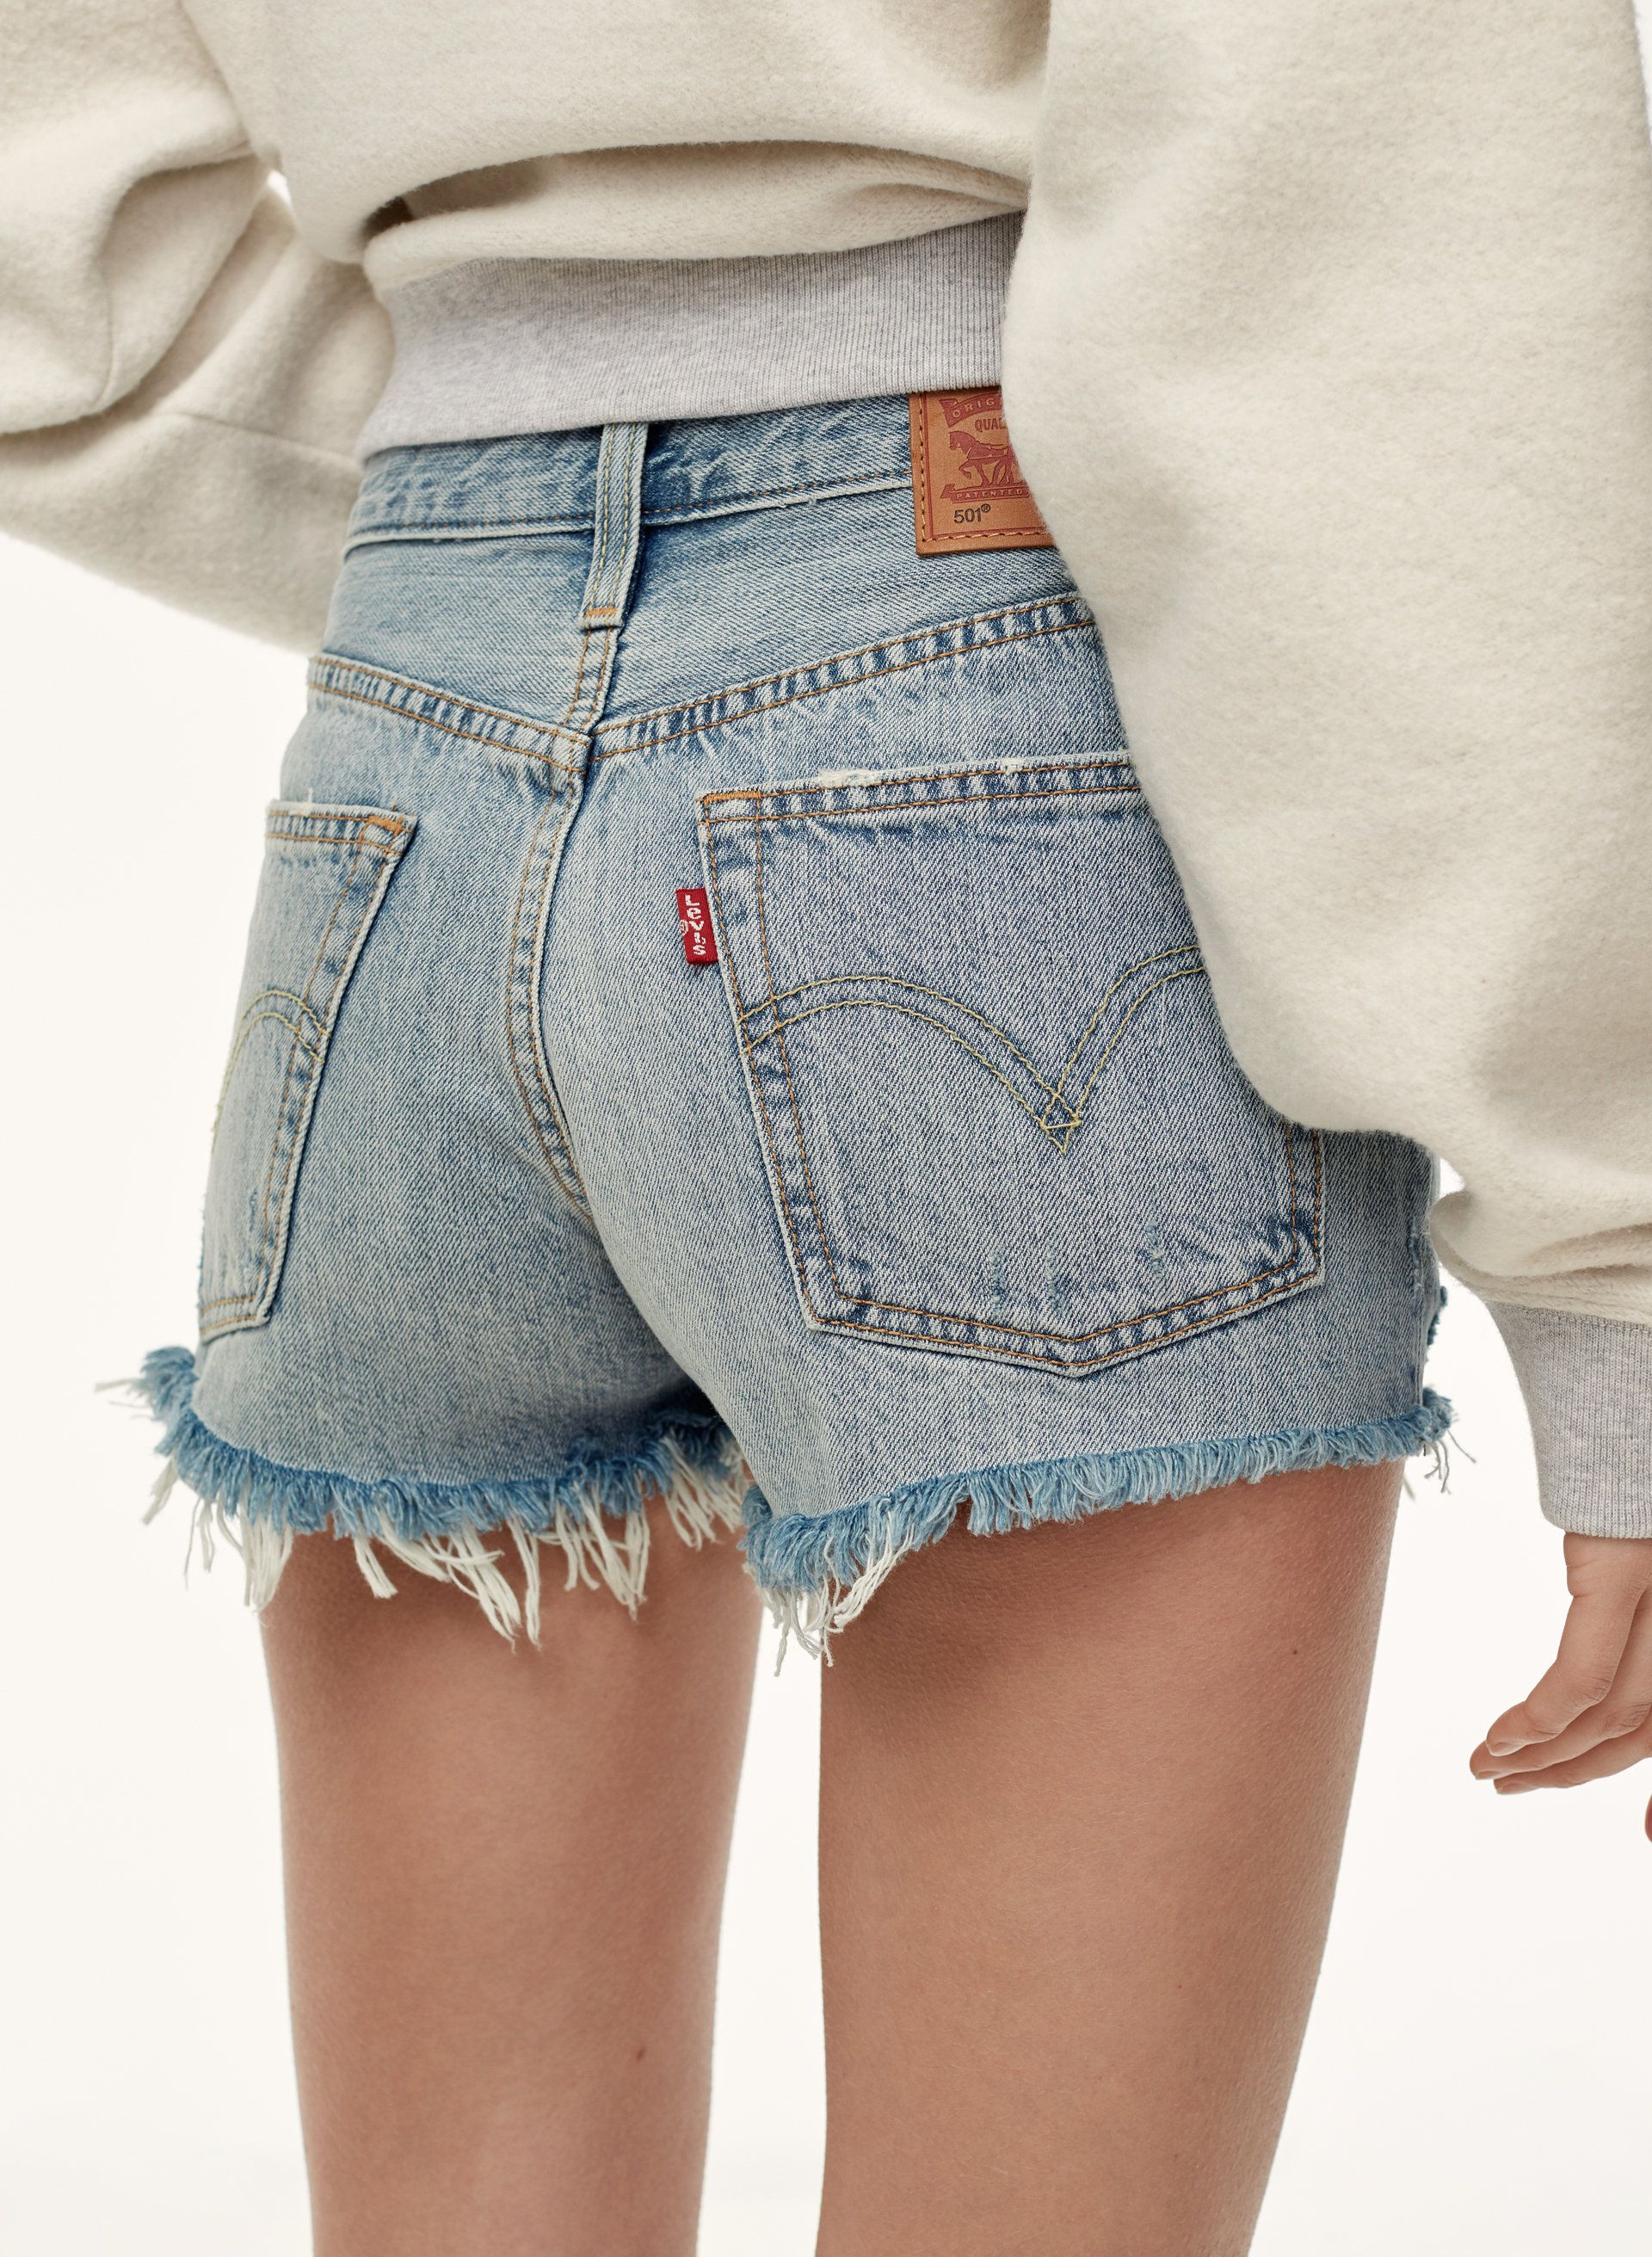 692ff33d Levi's 501 SHORT WAVELINE | Aritzia Want these so bad!! But they just don't  flatter my shape.